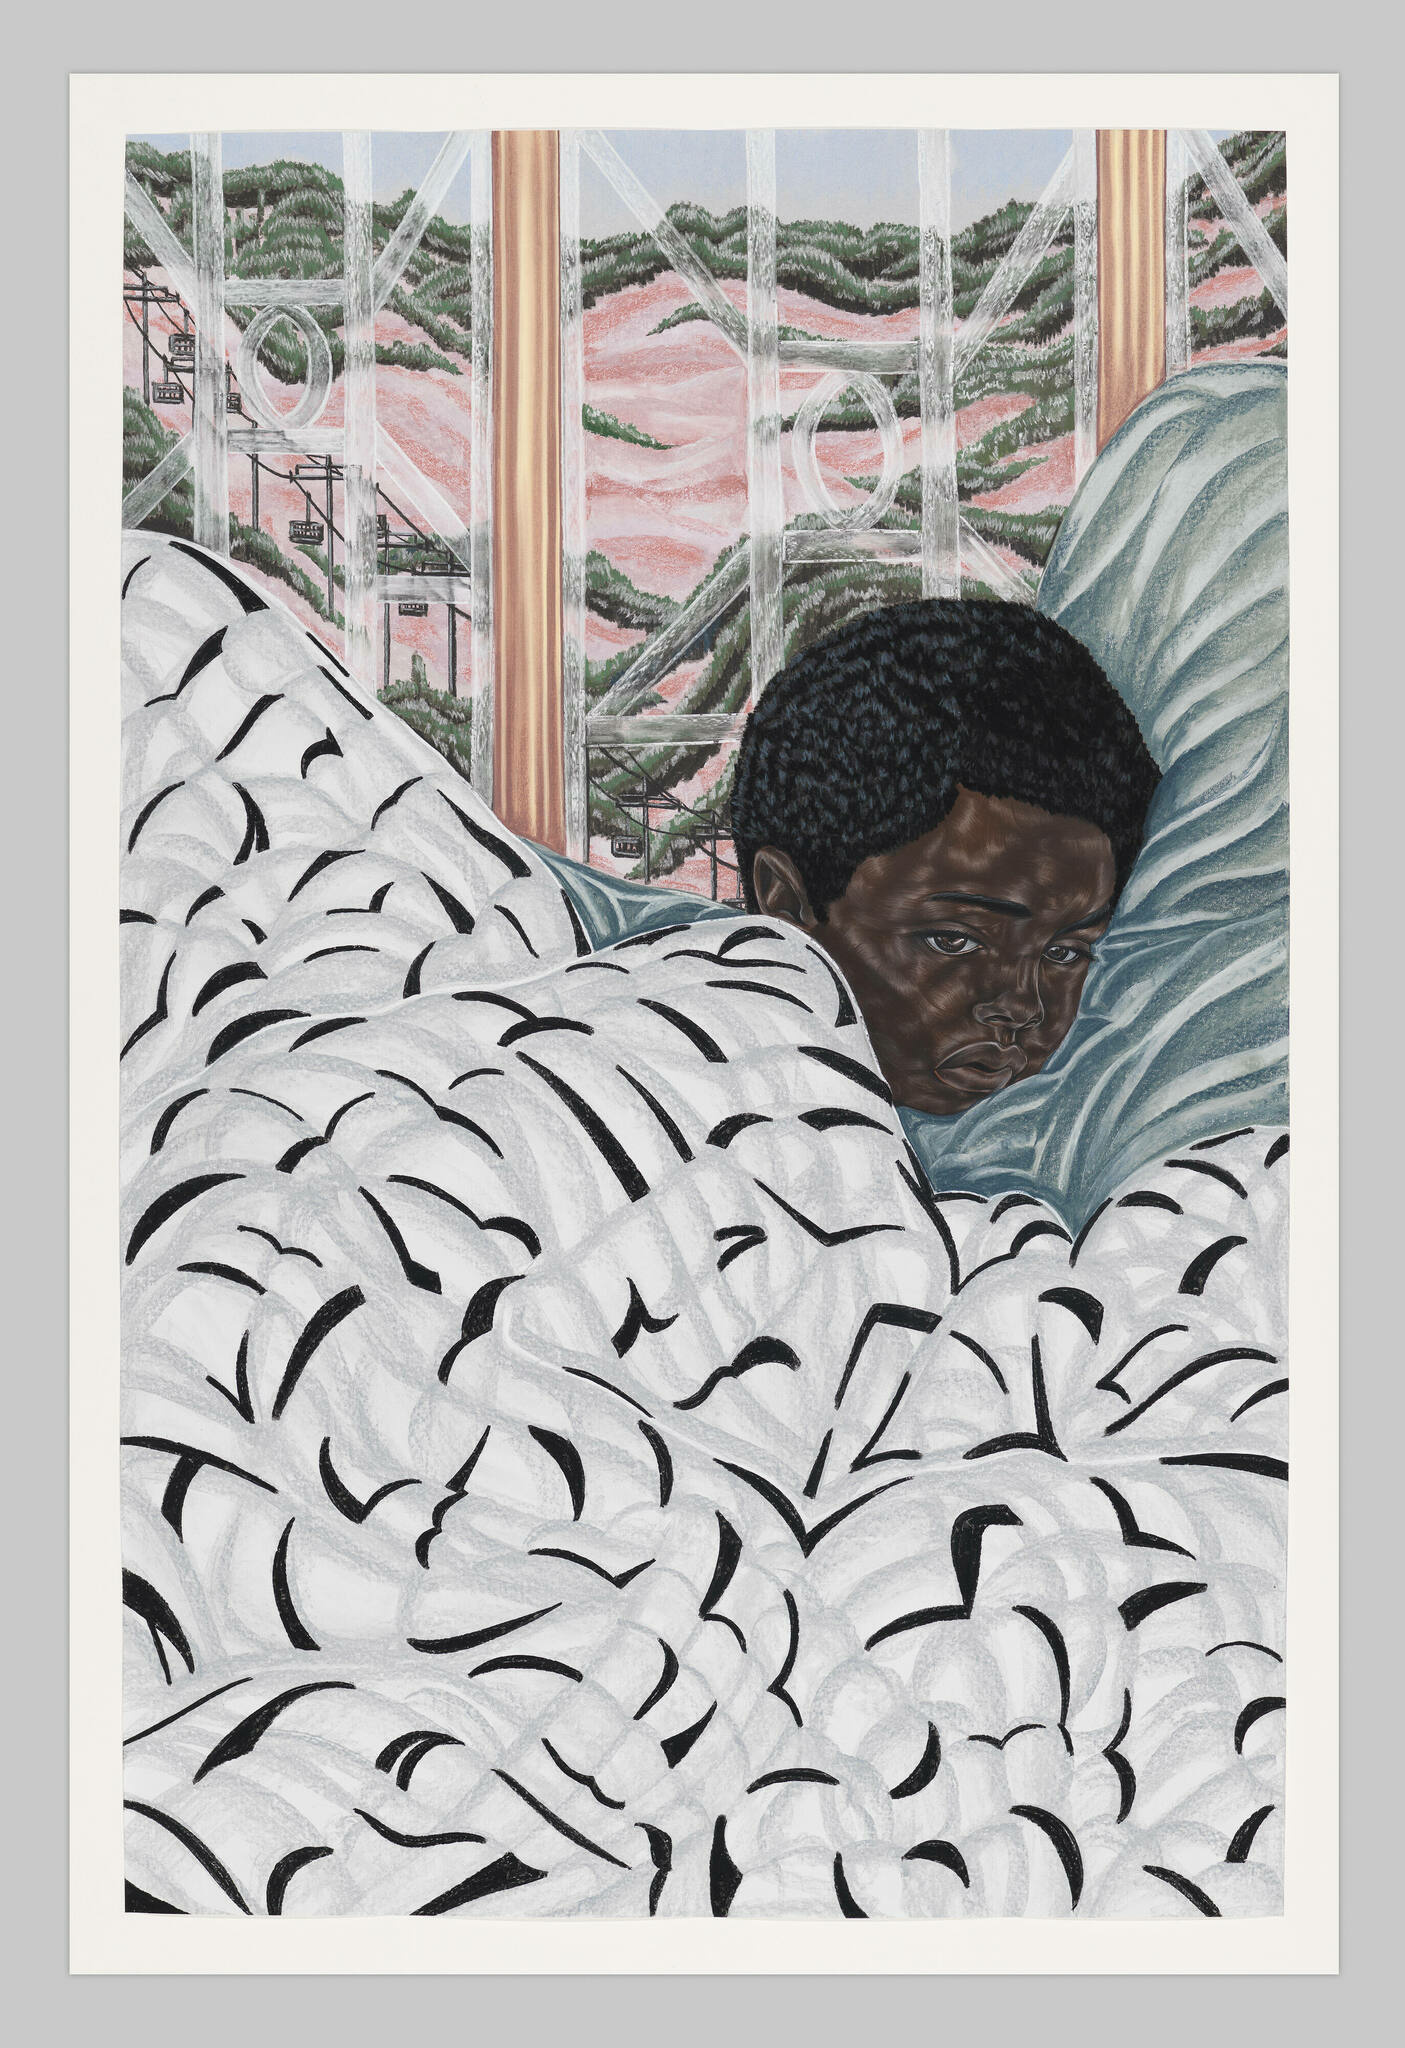 A Black child with a nervous expression is tucked into bed in front of a lavish window.